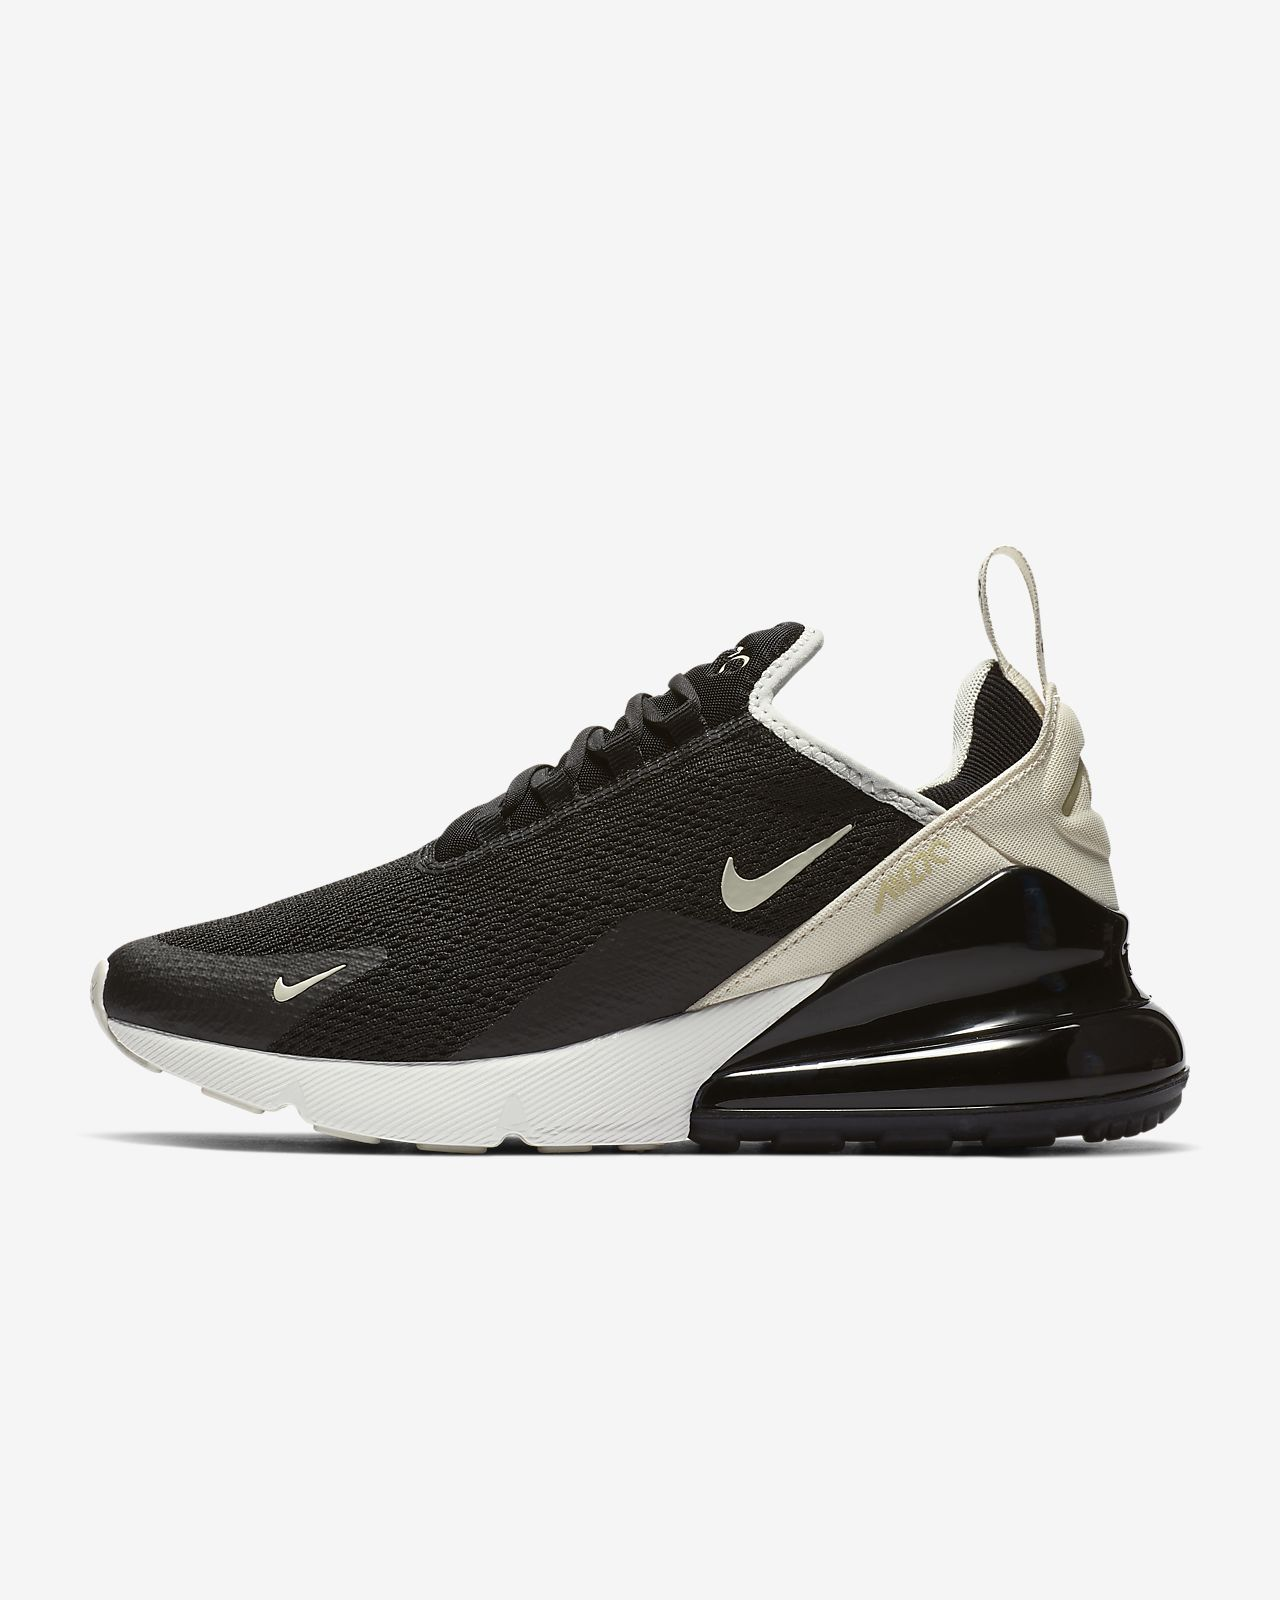 158a5638f4 Nike Air Max 270 Women's Shoe. Nike.com AU